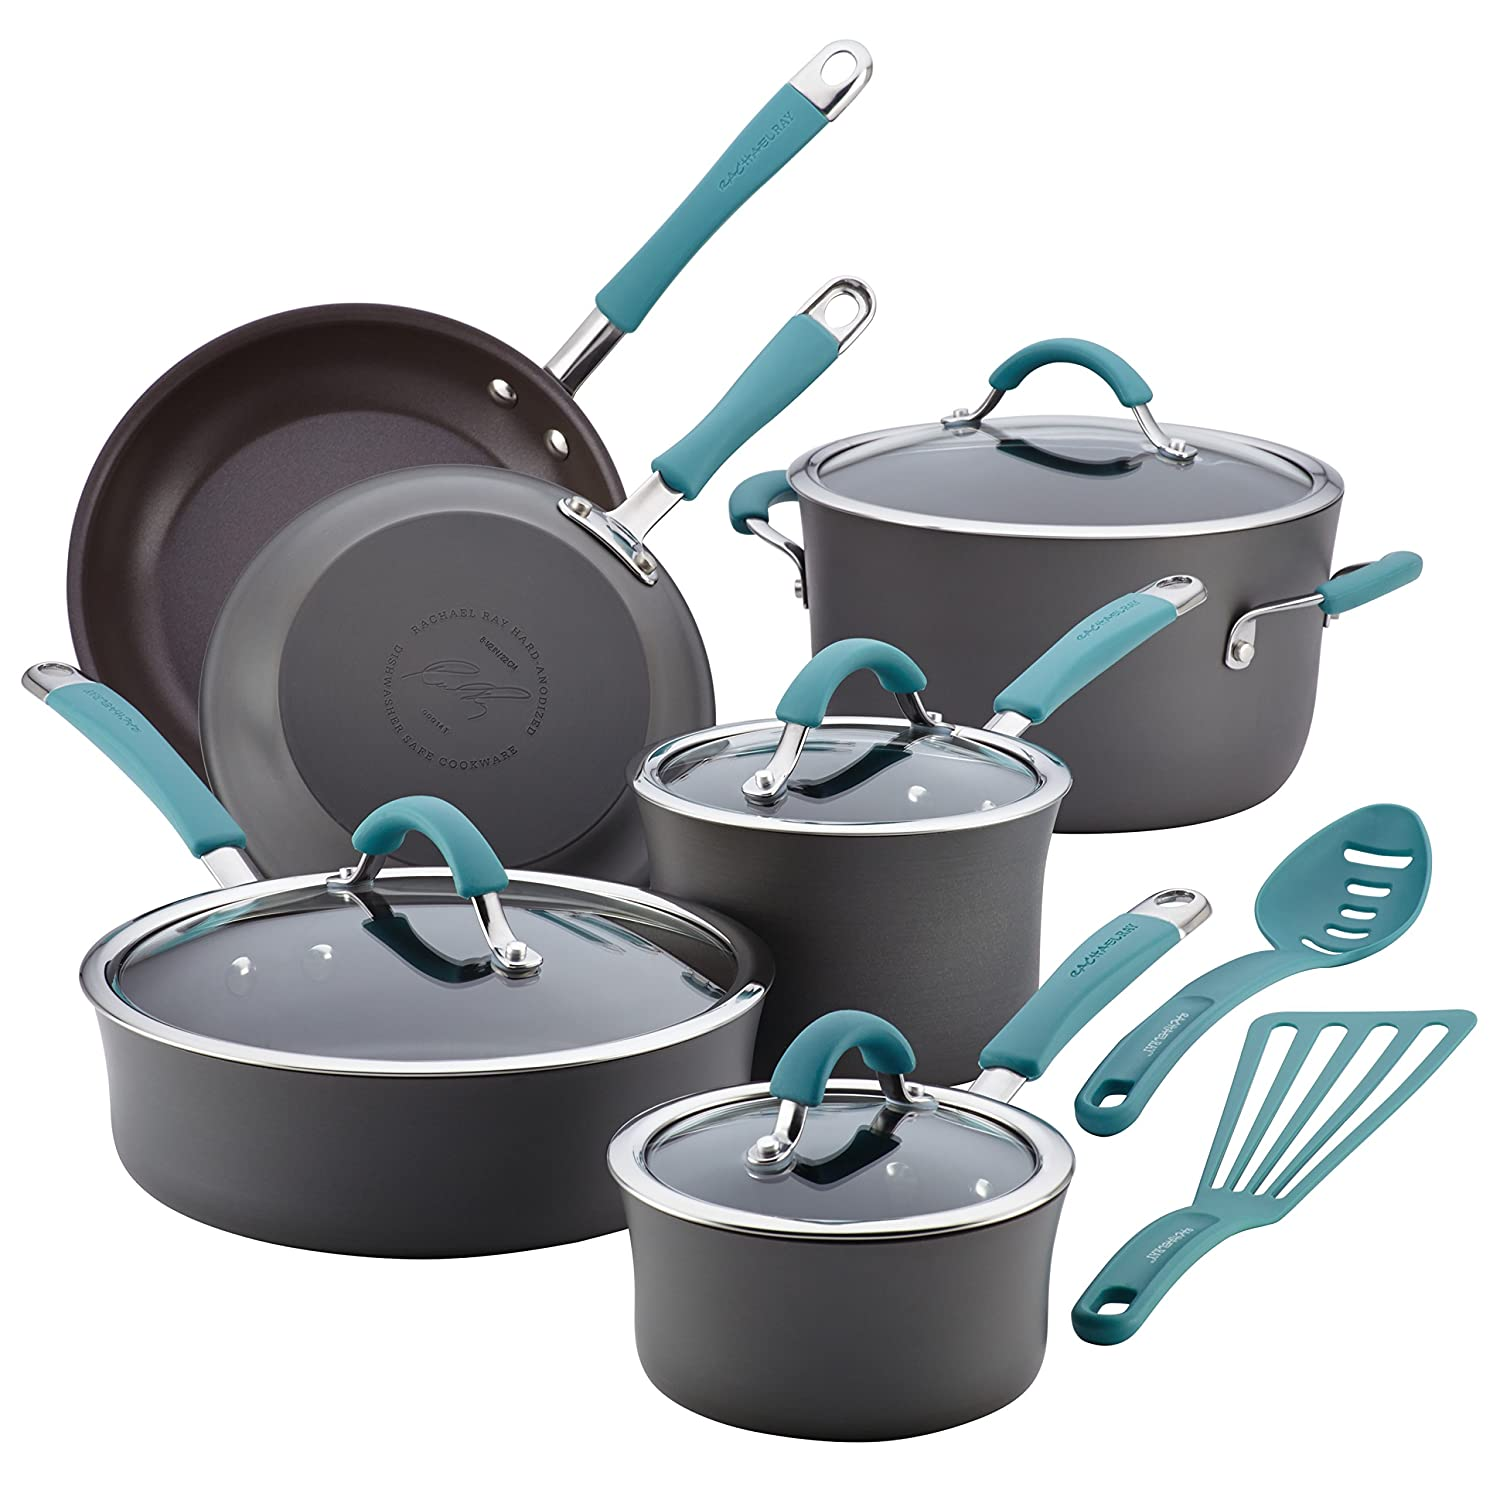 Rachael Ray Cucina Hard-Anodized Aluminum Nonstick Pots and Pans Cookware Set, 12-Piece, Gray, Agave Blue Handles